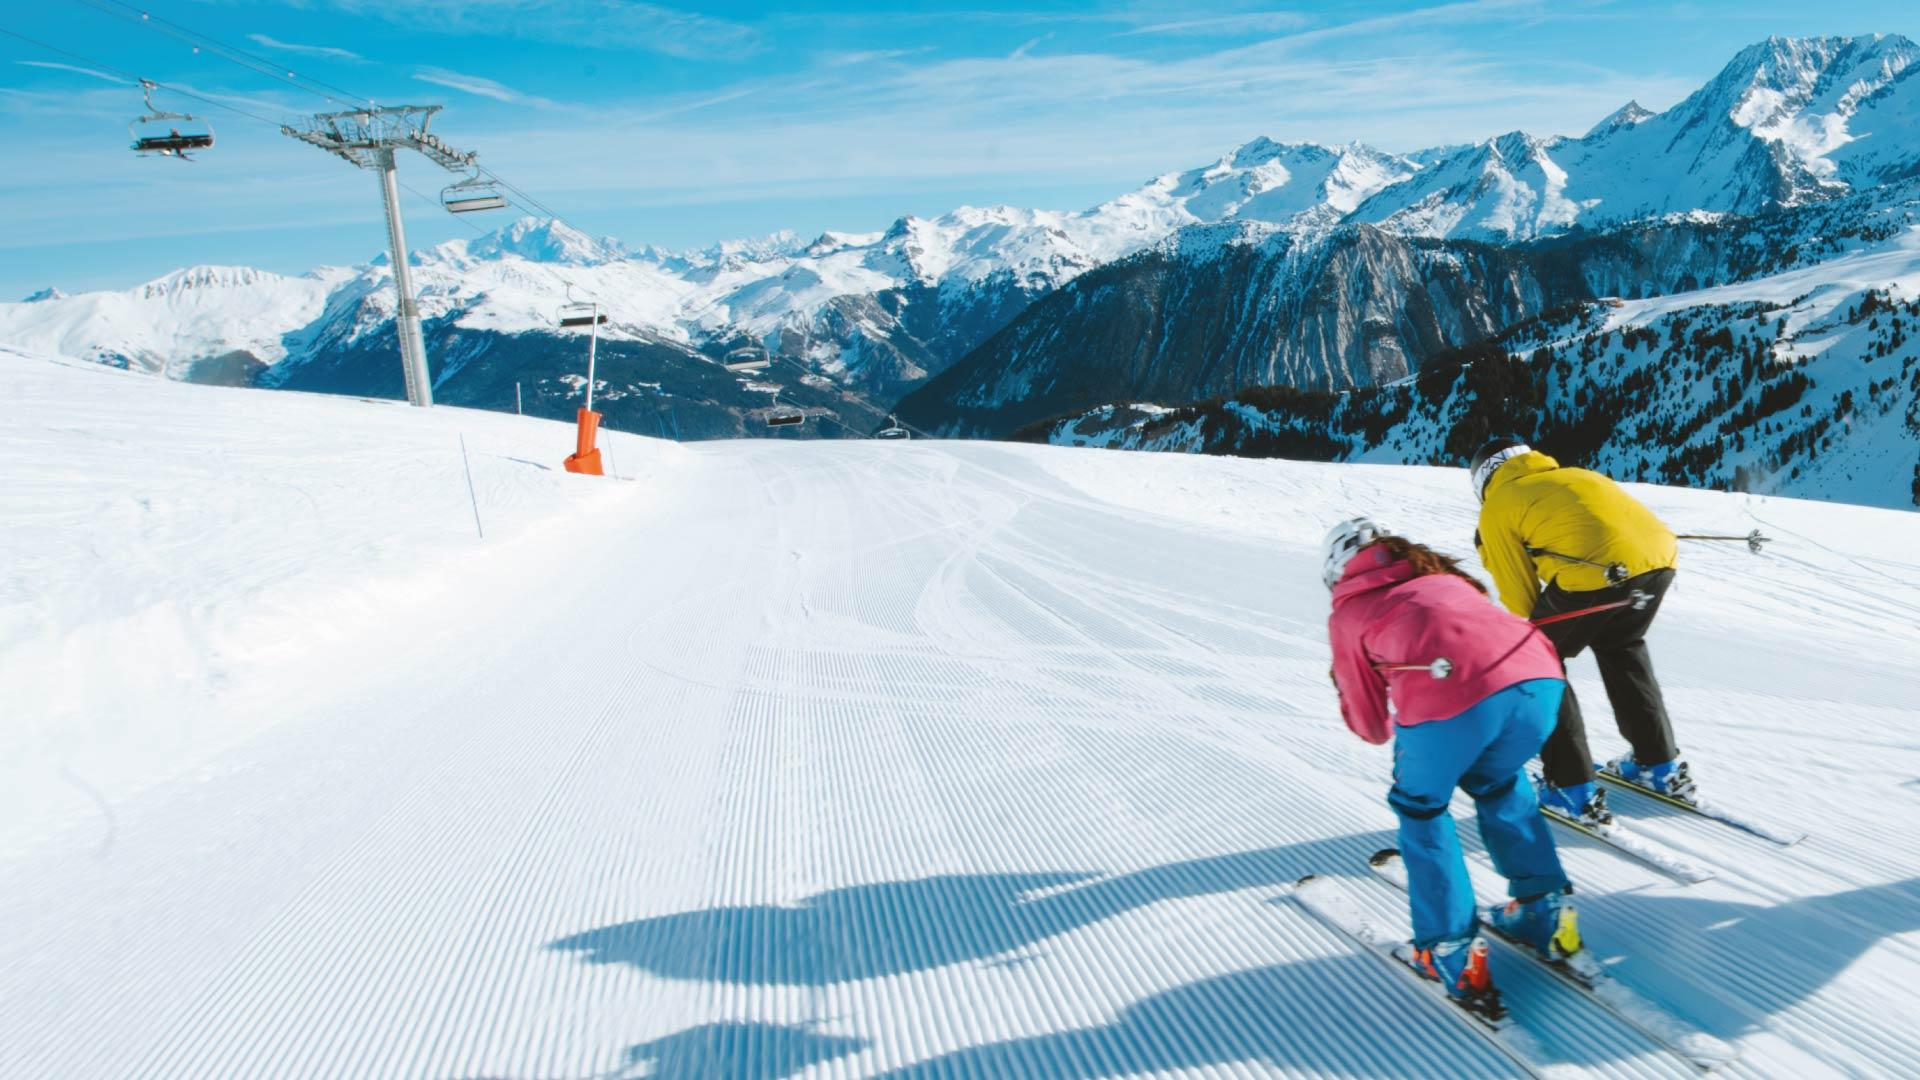 Up close with the 3 Vallées mountaintops